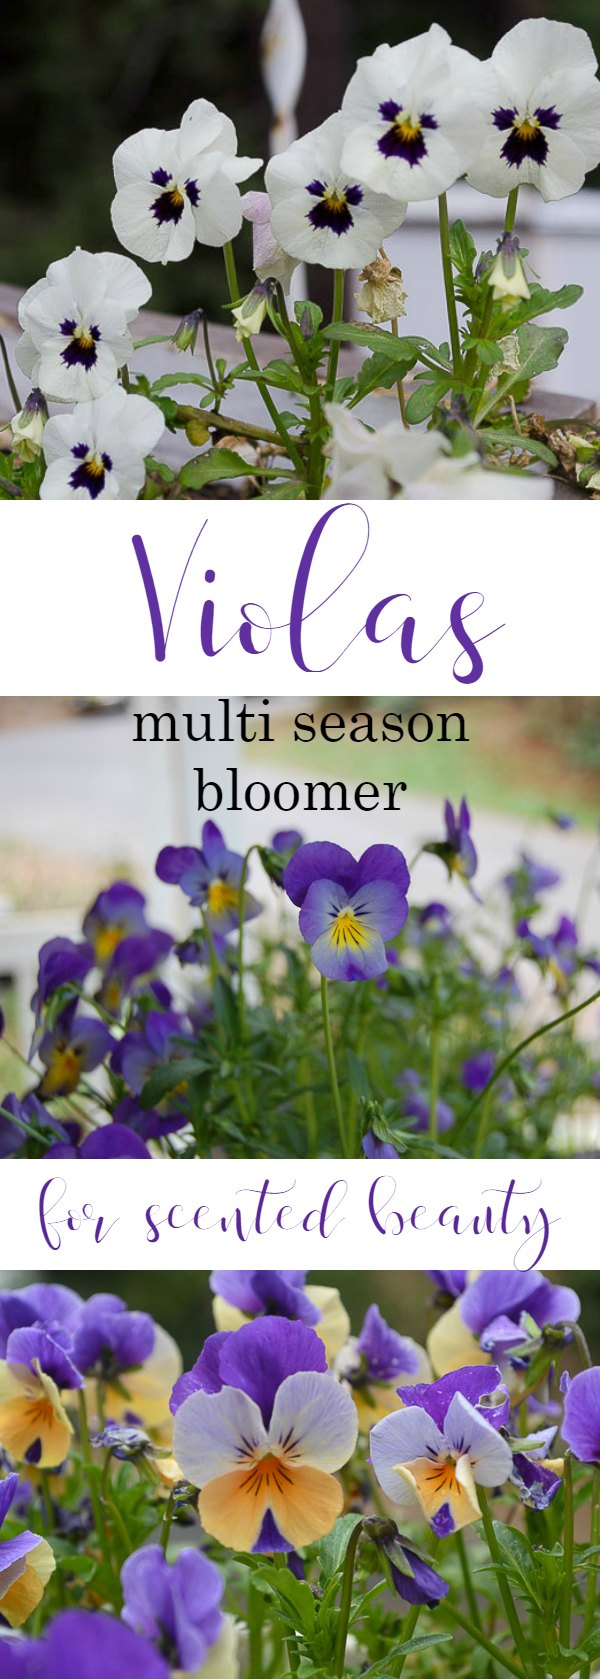 Violas for winter cheer, a sweet scented bloomer that likes it cool. As easy to grow as they are beautiful. Perfect in garden beds, window boxes and pots on the front porch or patio.